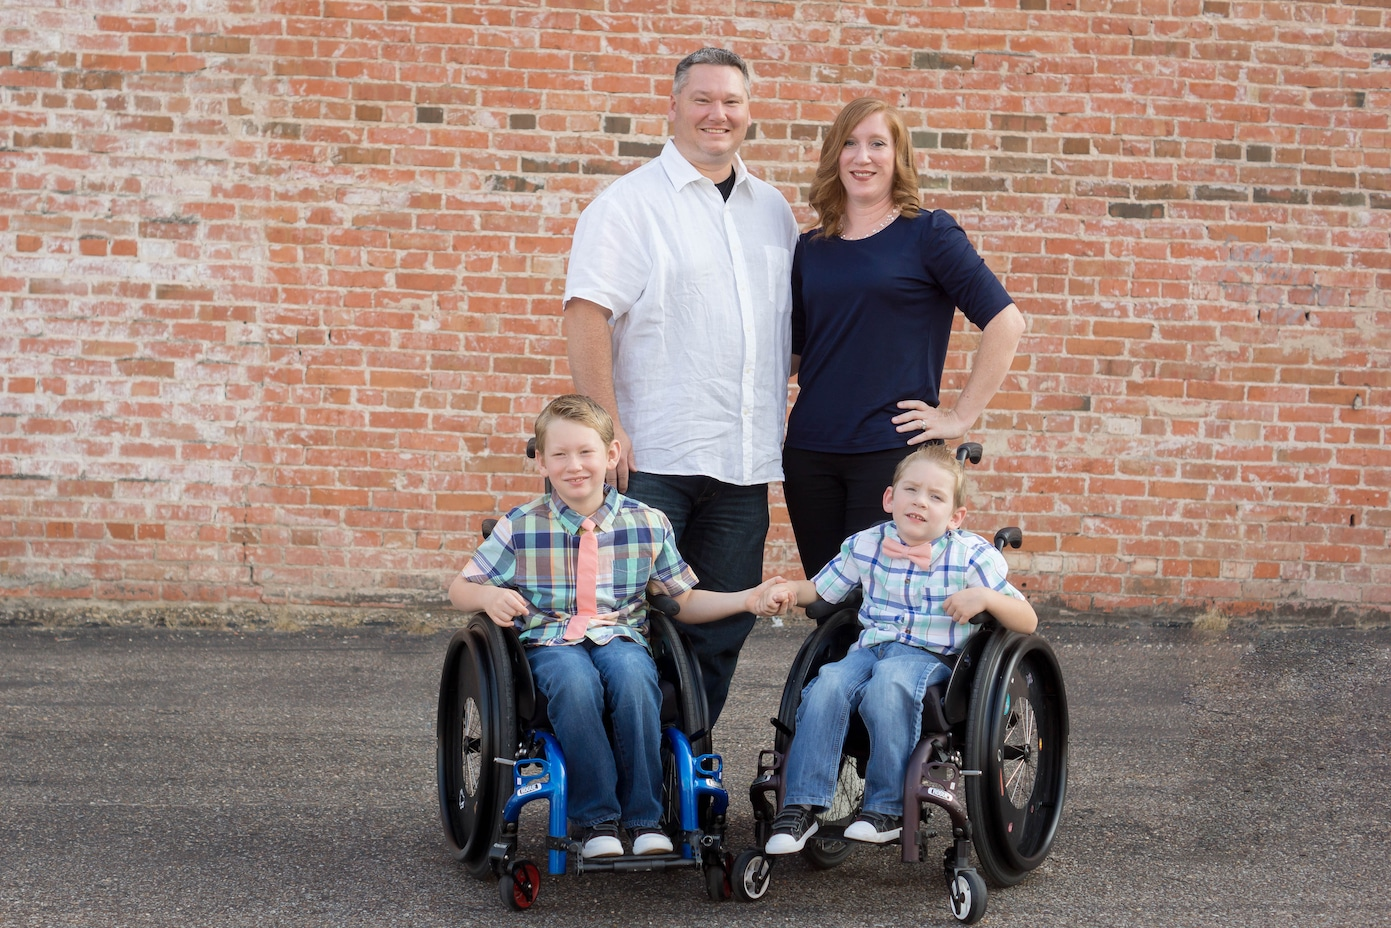 The Copp Family, Jody, Melissa, Calan, and Lawson in front of a brick building smiling at the camera.